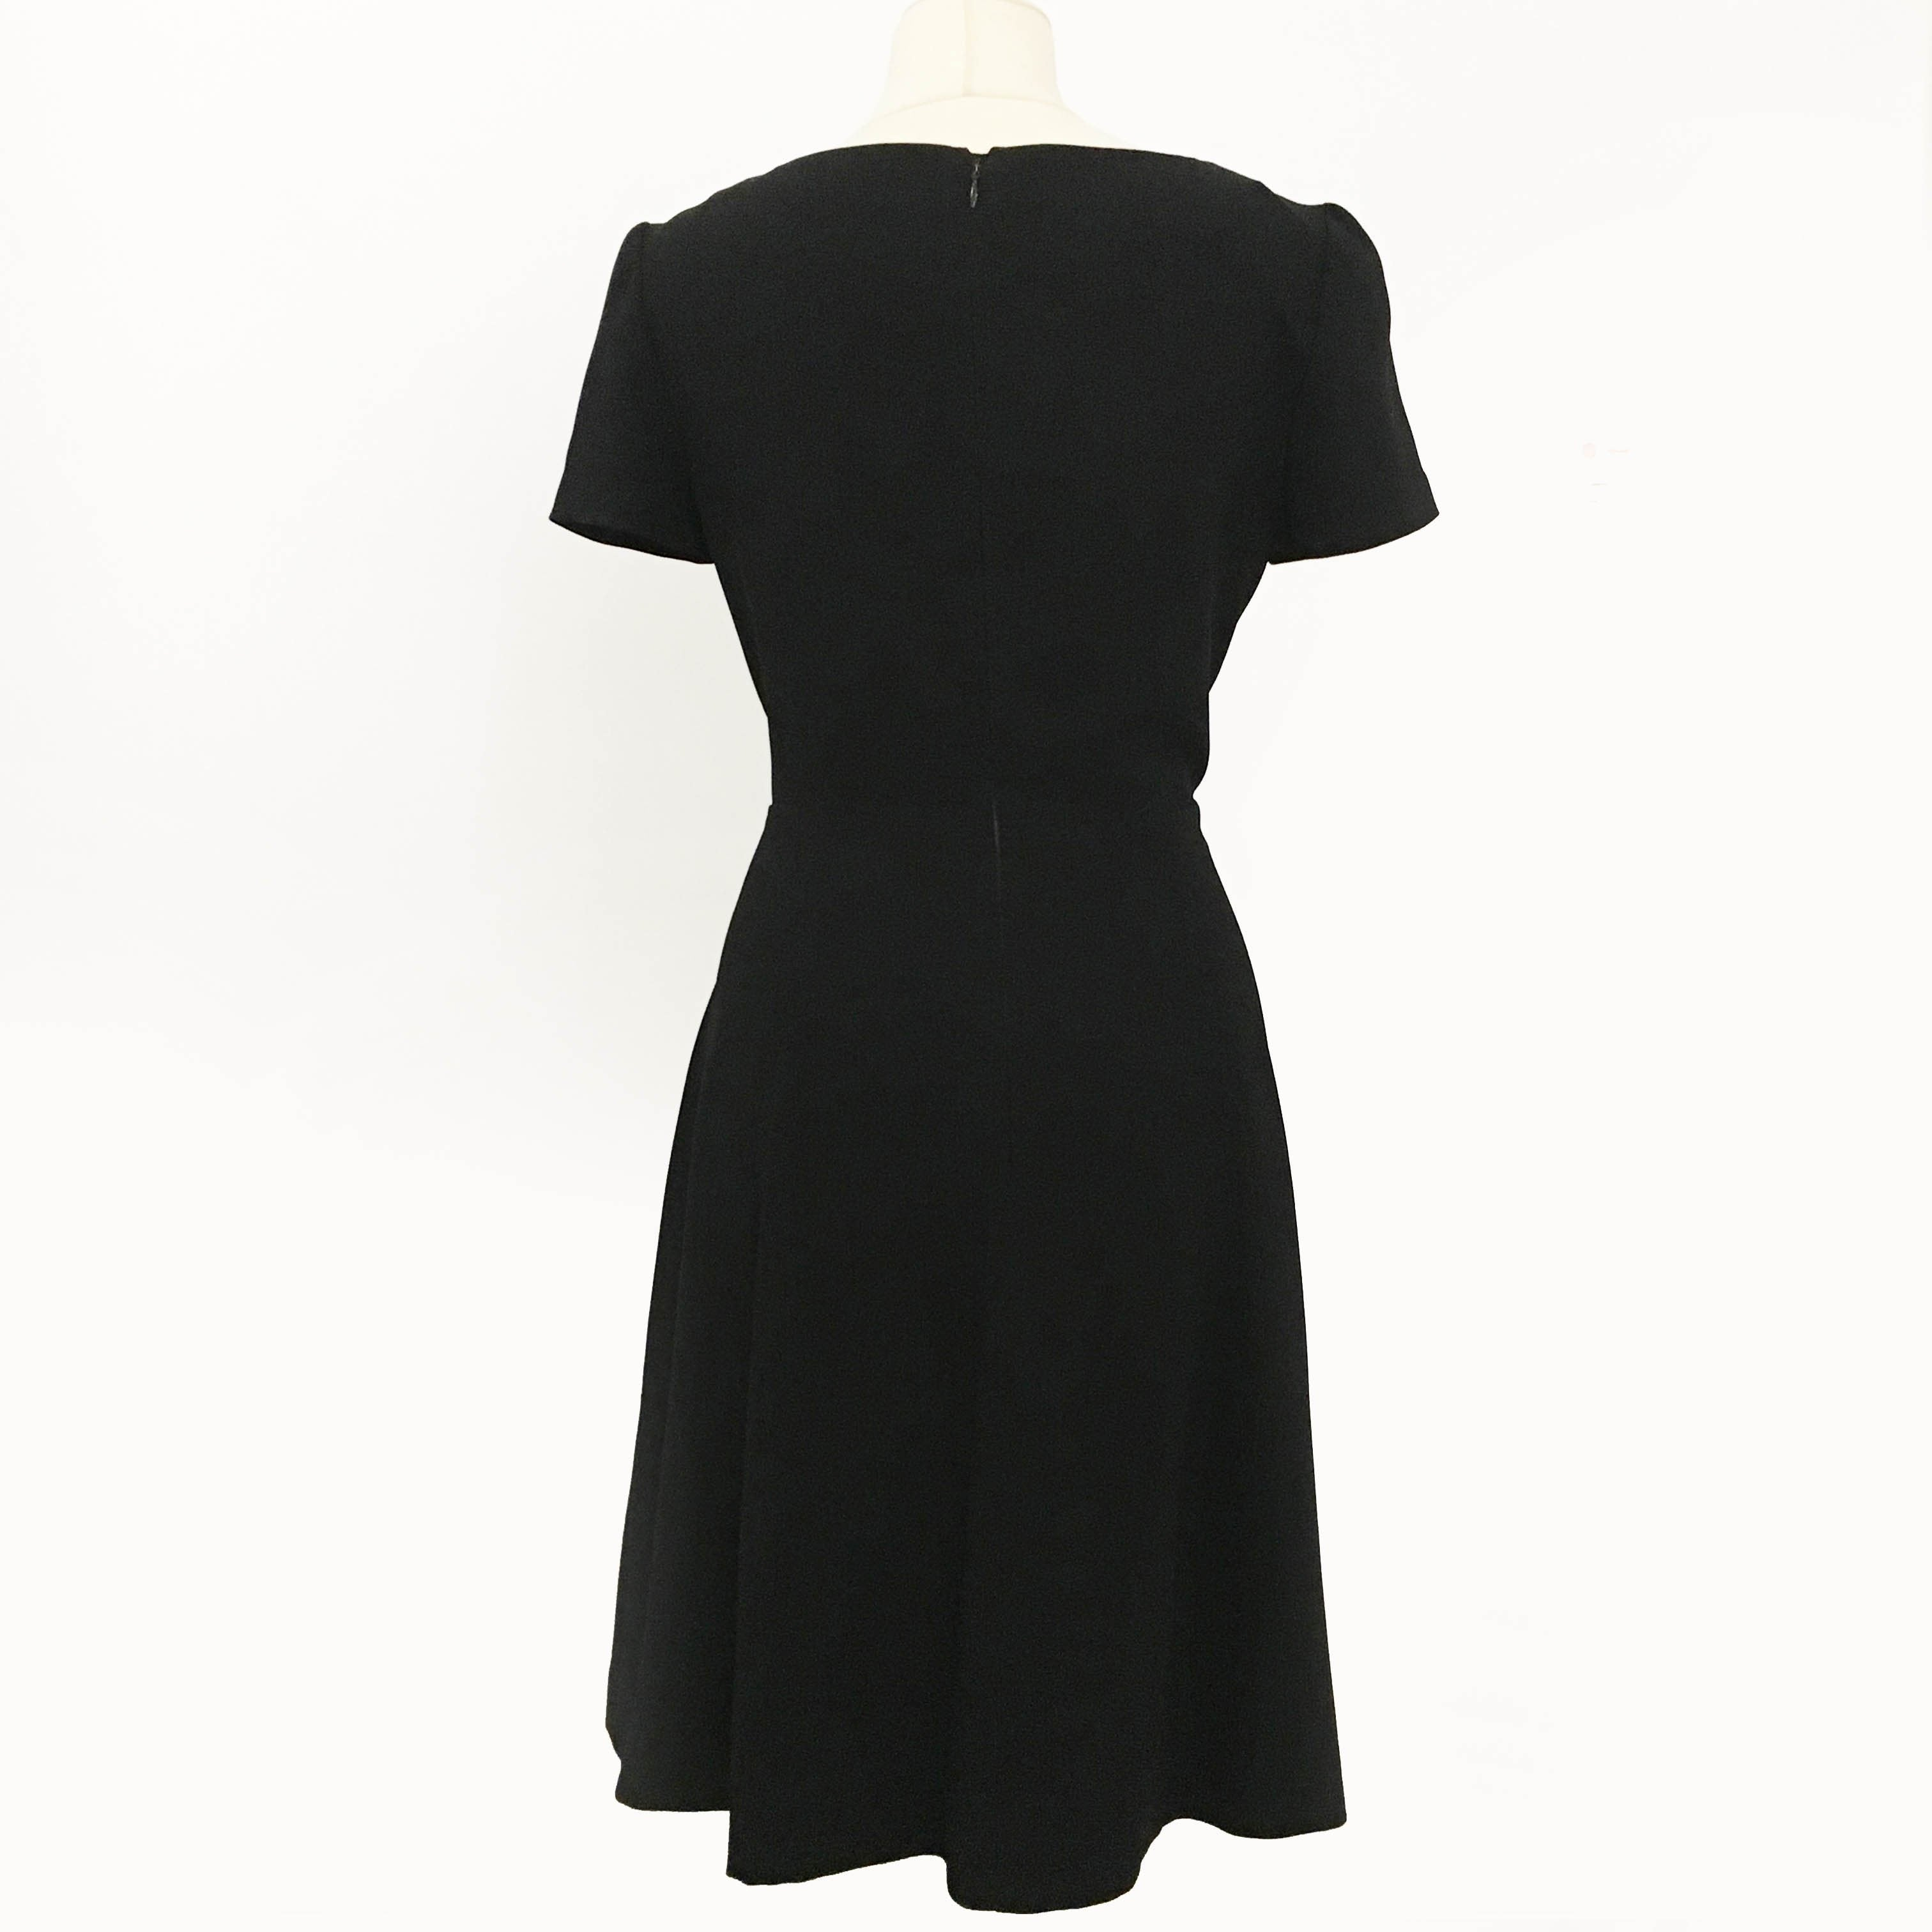 Prada Black Short Sleeve Dress